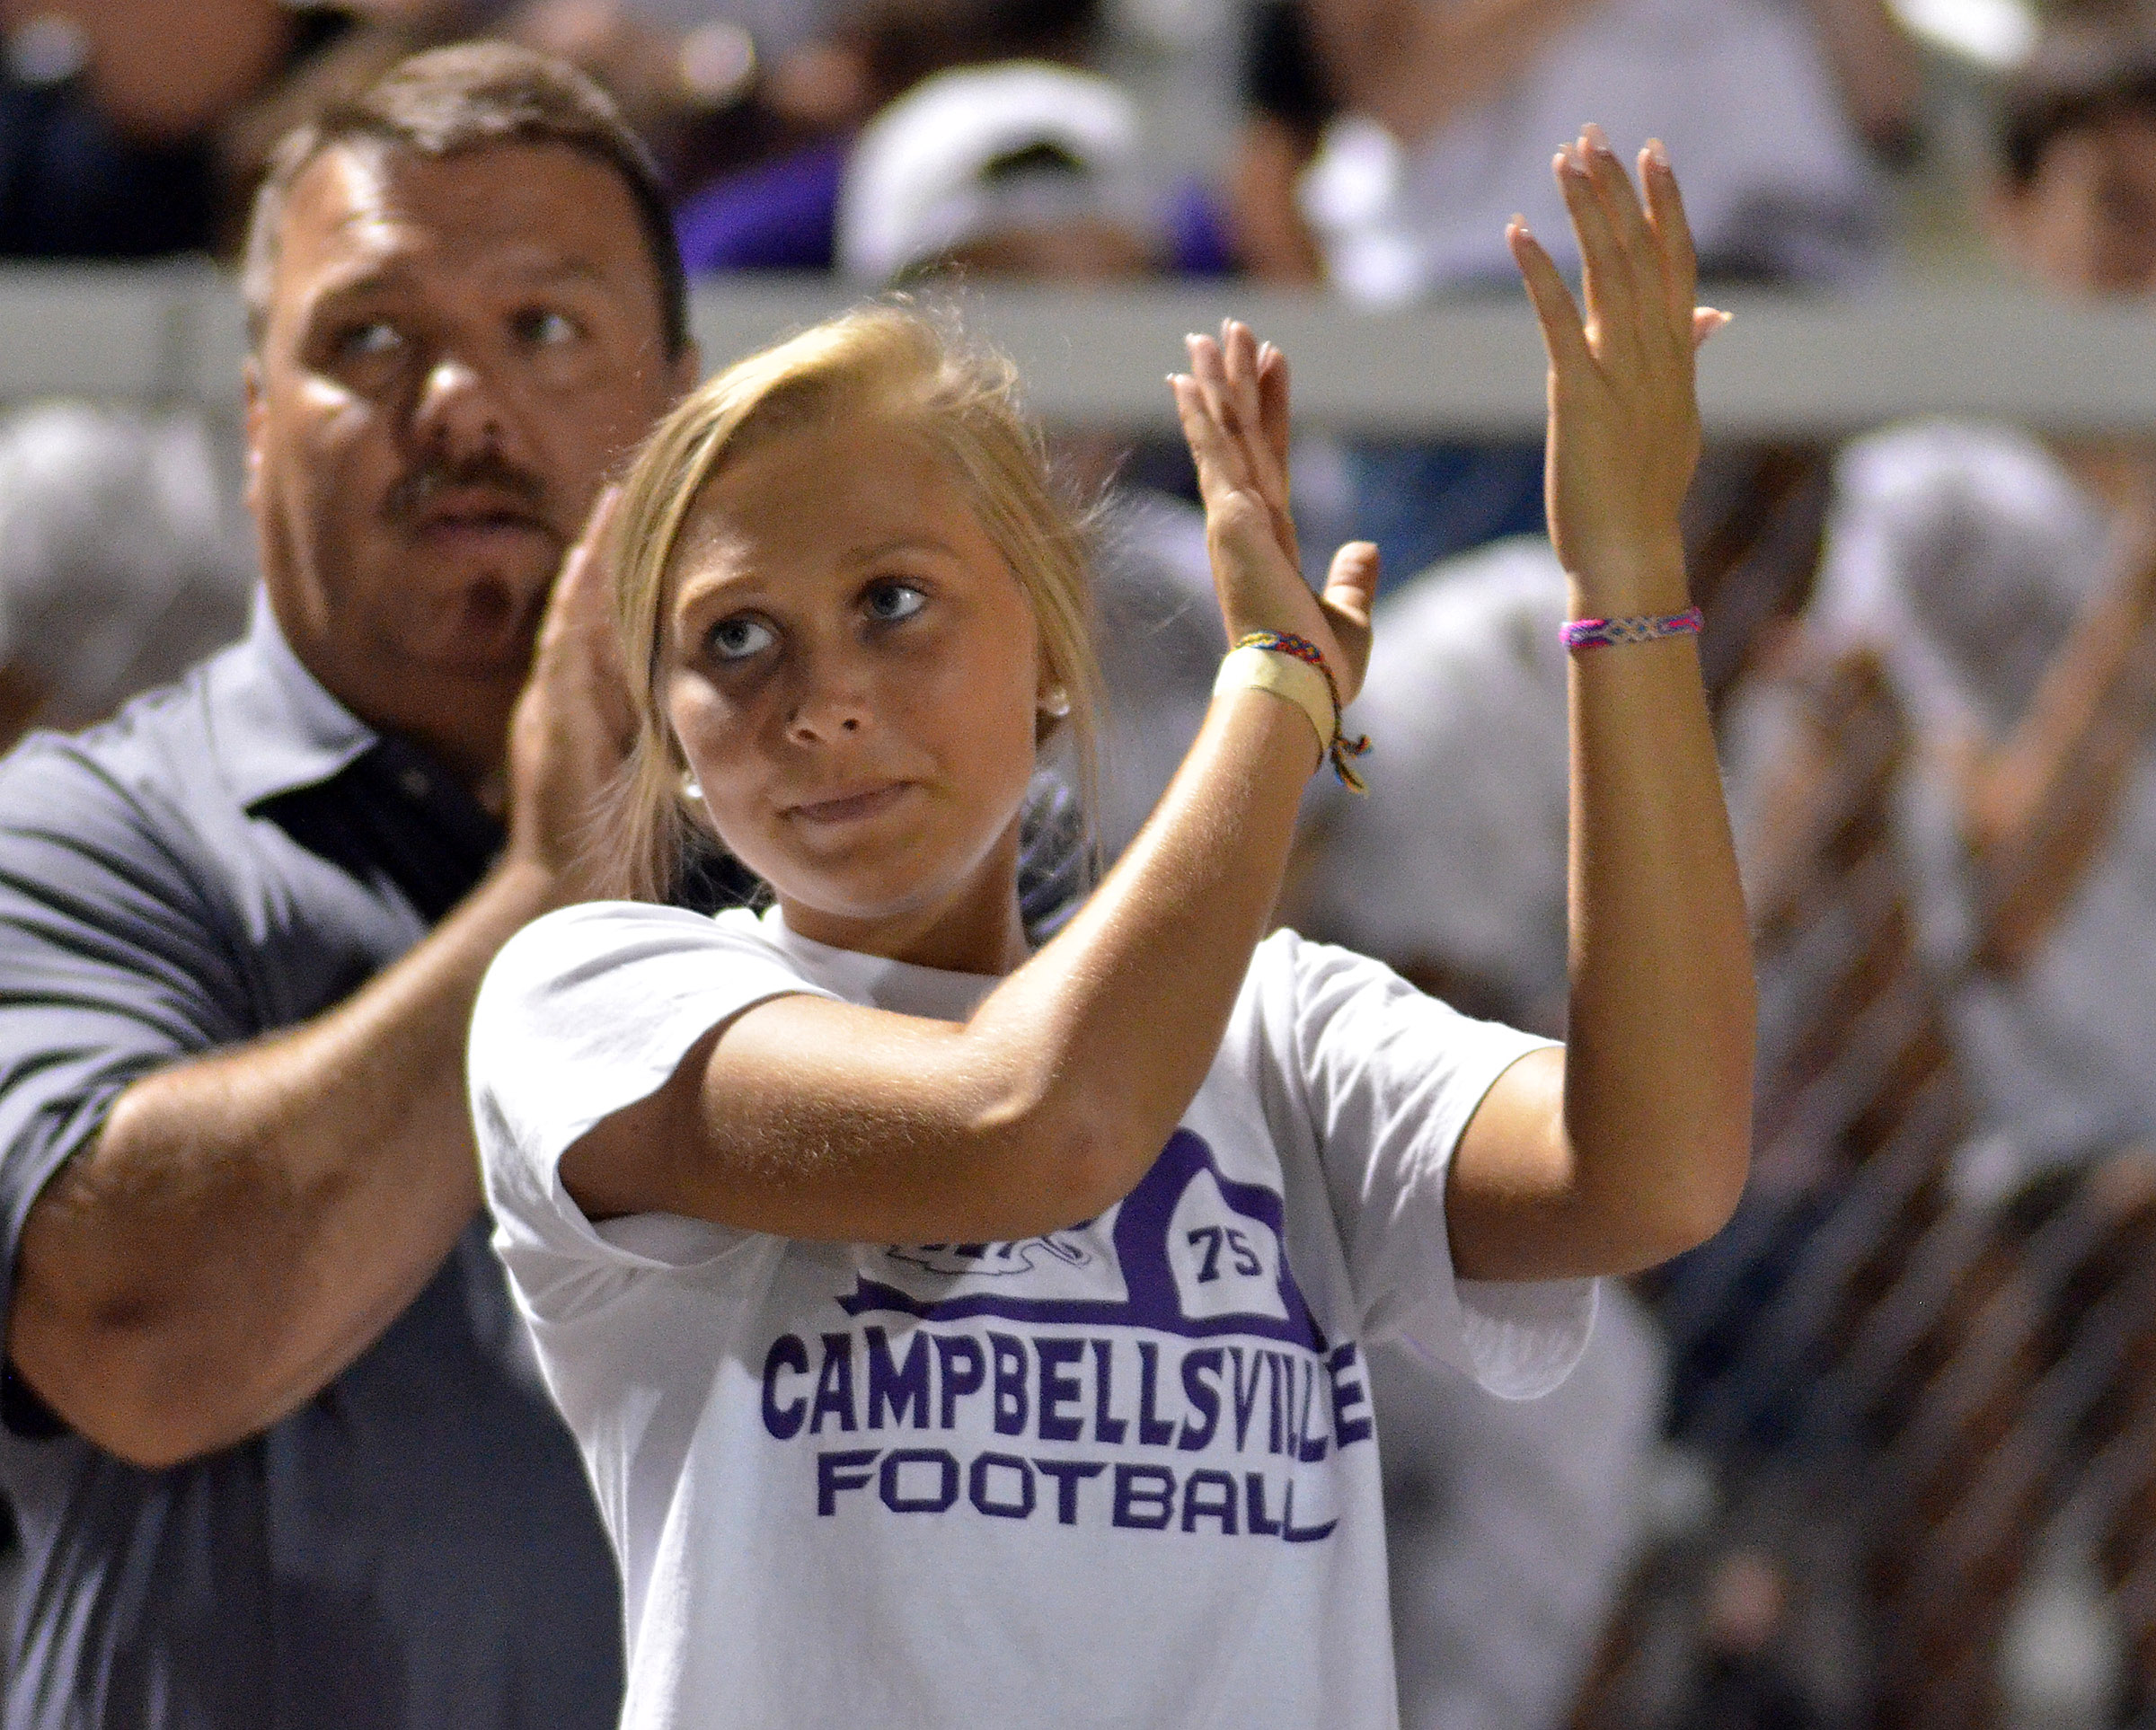 CHS junior Tatem Wiseman cheers for the Eagles.